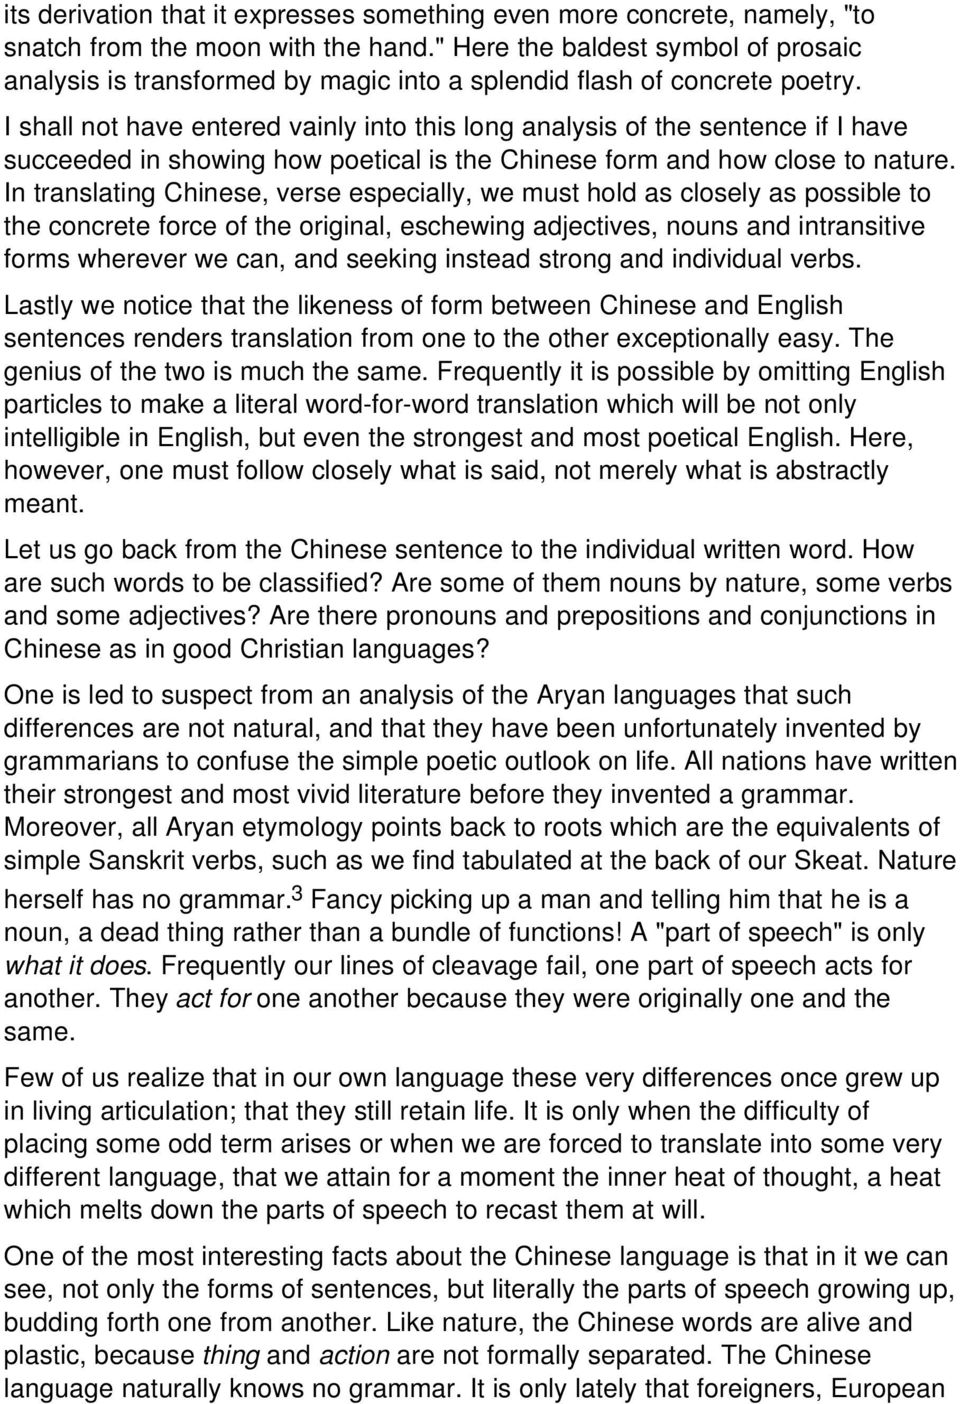 I shall not have entered vainly into this long analysis of the sentence if I have succeeded in showing how poetical is the Chinese form and how close to nature.